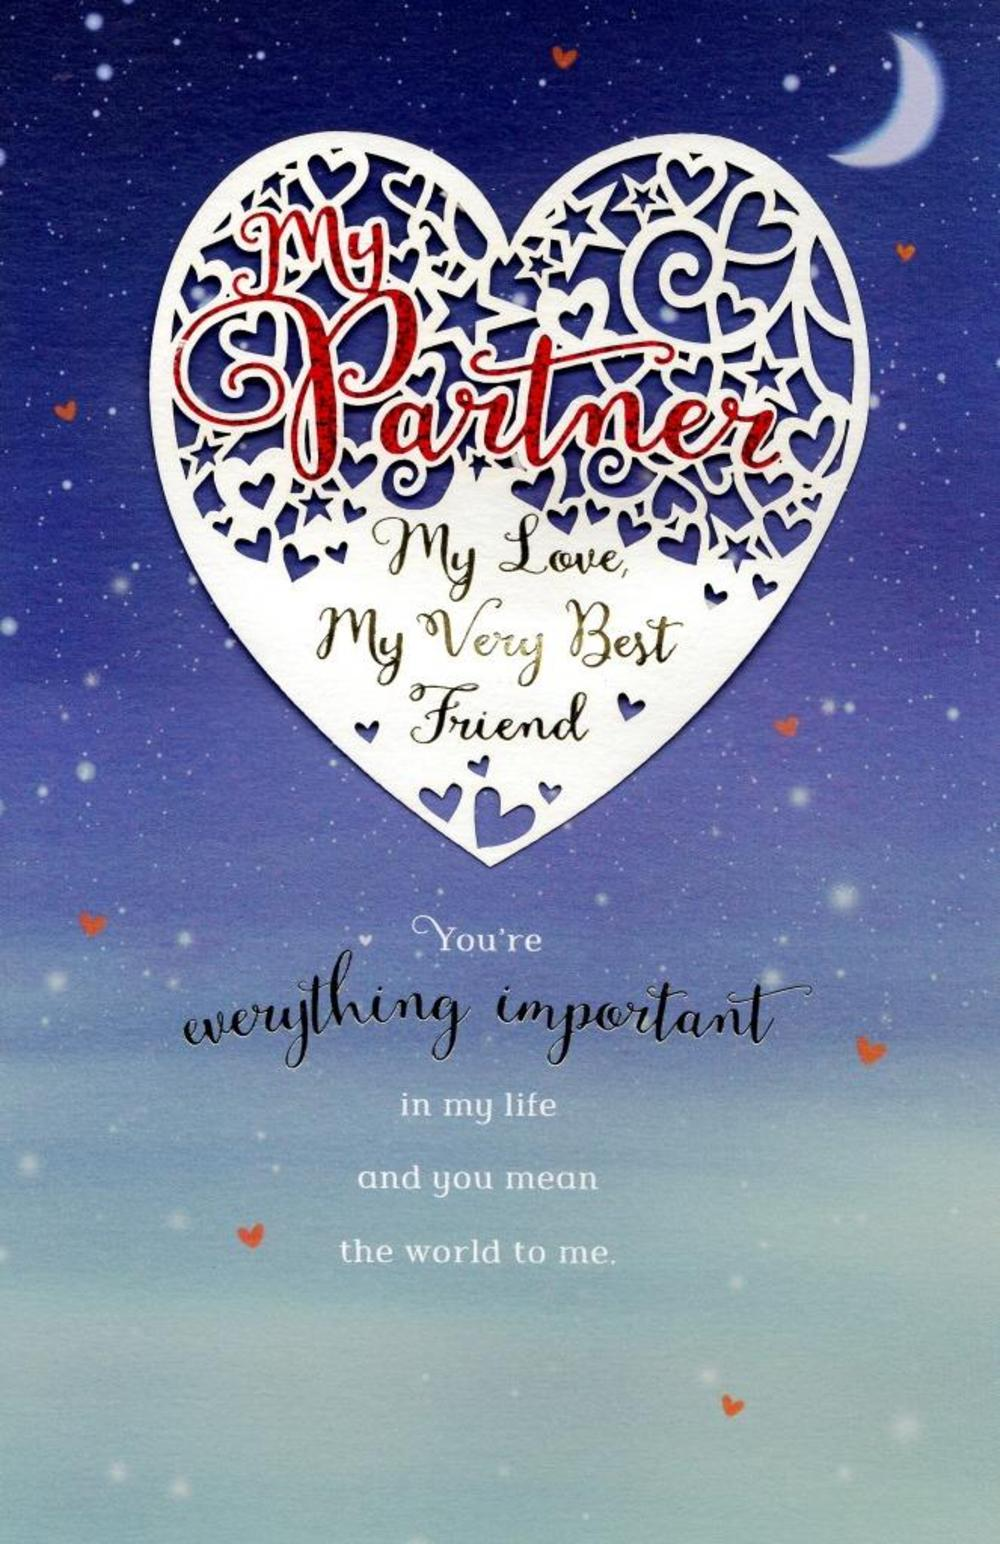 My partner my love embelished valentines day greeting card cards my partner my love embelished valentines day greeting card m4hsunfo